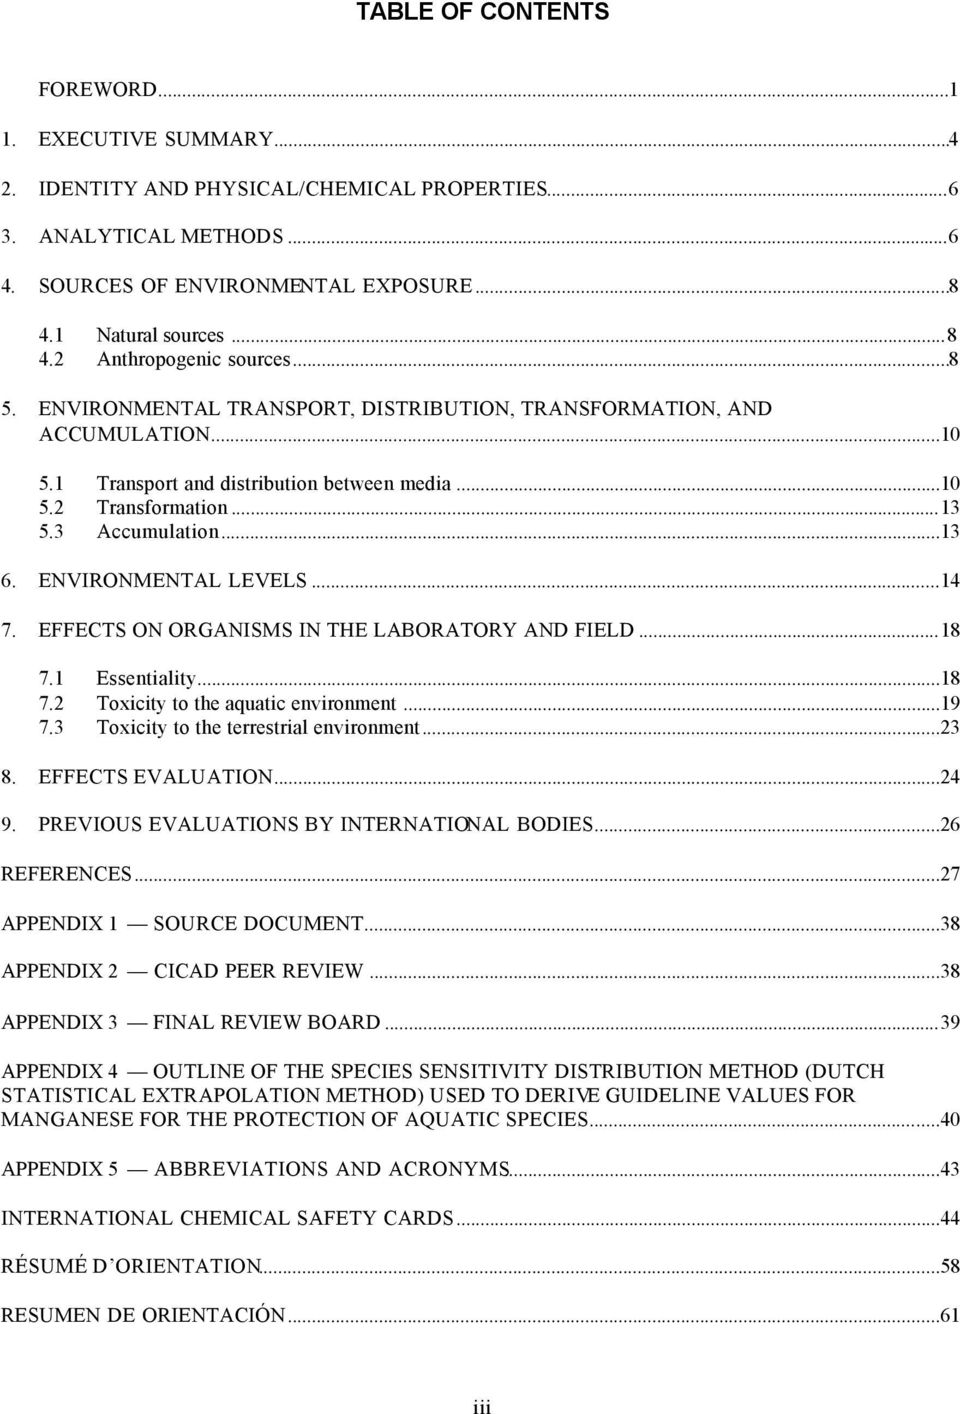 ENVIRONMENTAL LEVELS...14 7. EFFECTS ON ORGANISMS IN THE LABORATORY AND FIELD...18 7.1 Essentiality...18 7.2 Toxicity to the aquatic environment...19 7.3 Toxicity to the terrestrial environment...23 8.